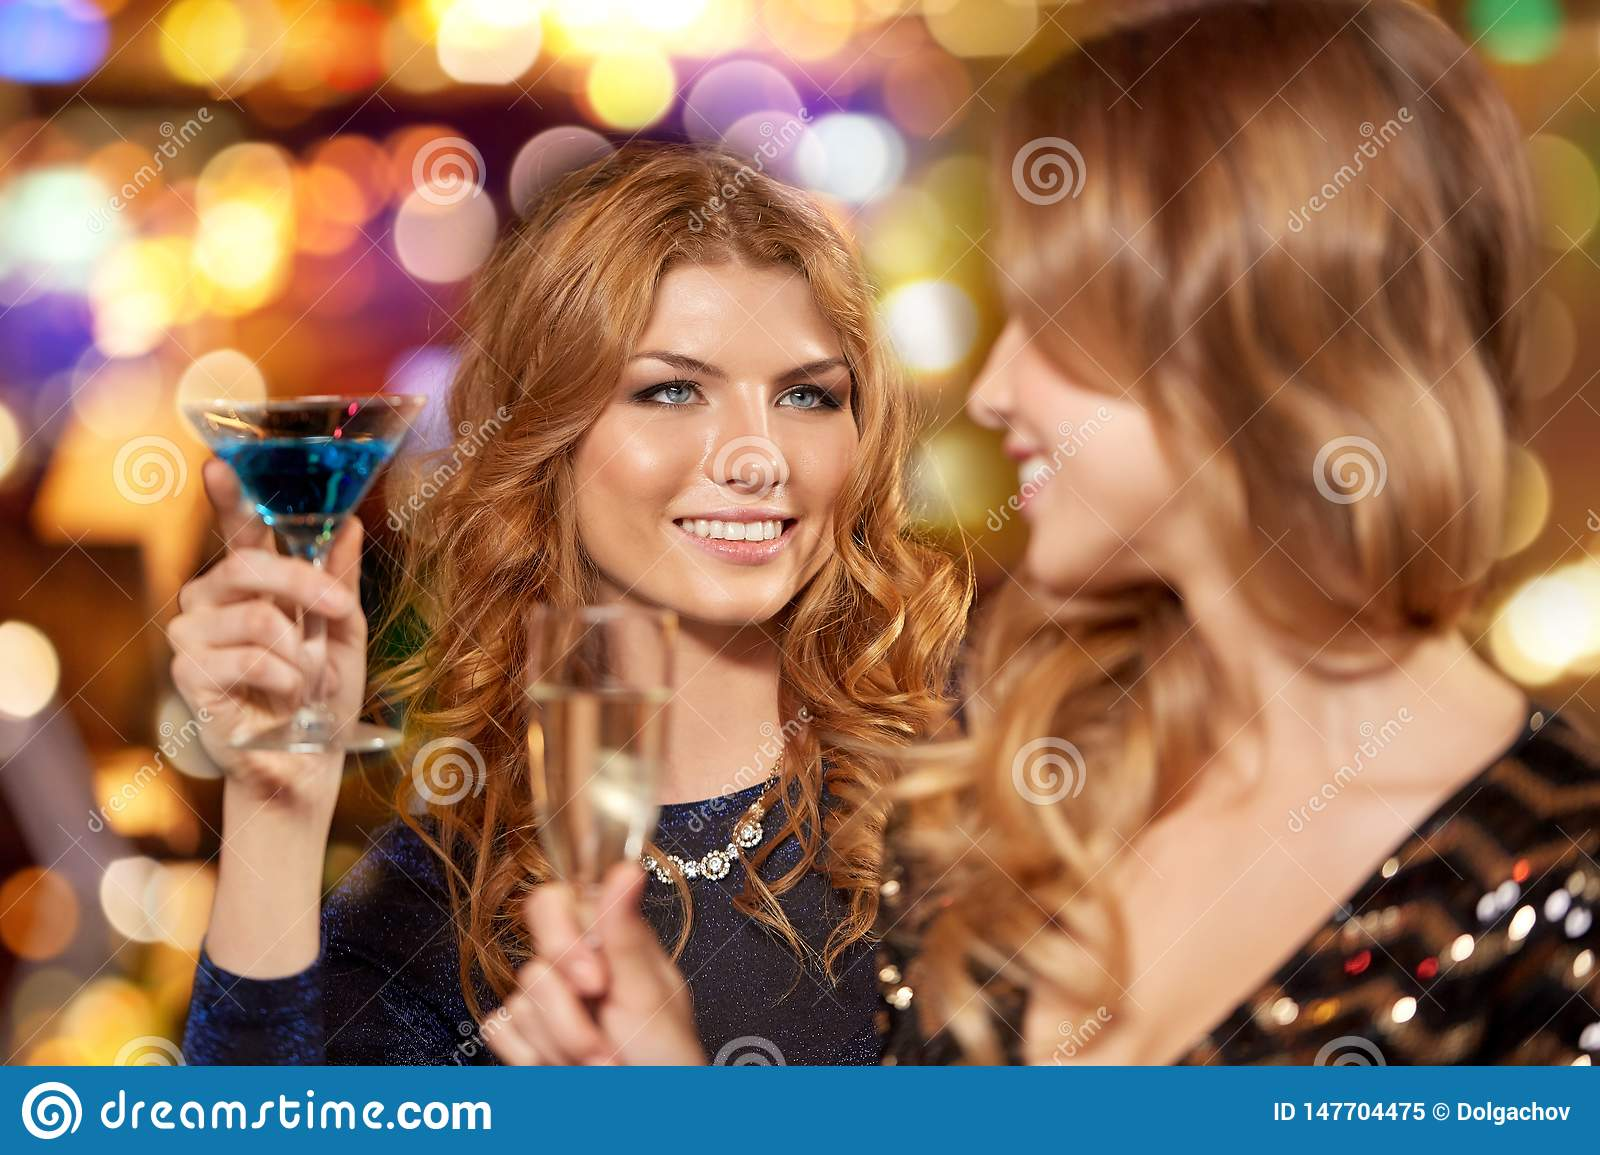 Happy women drinks in glasses at night club